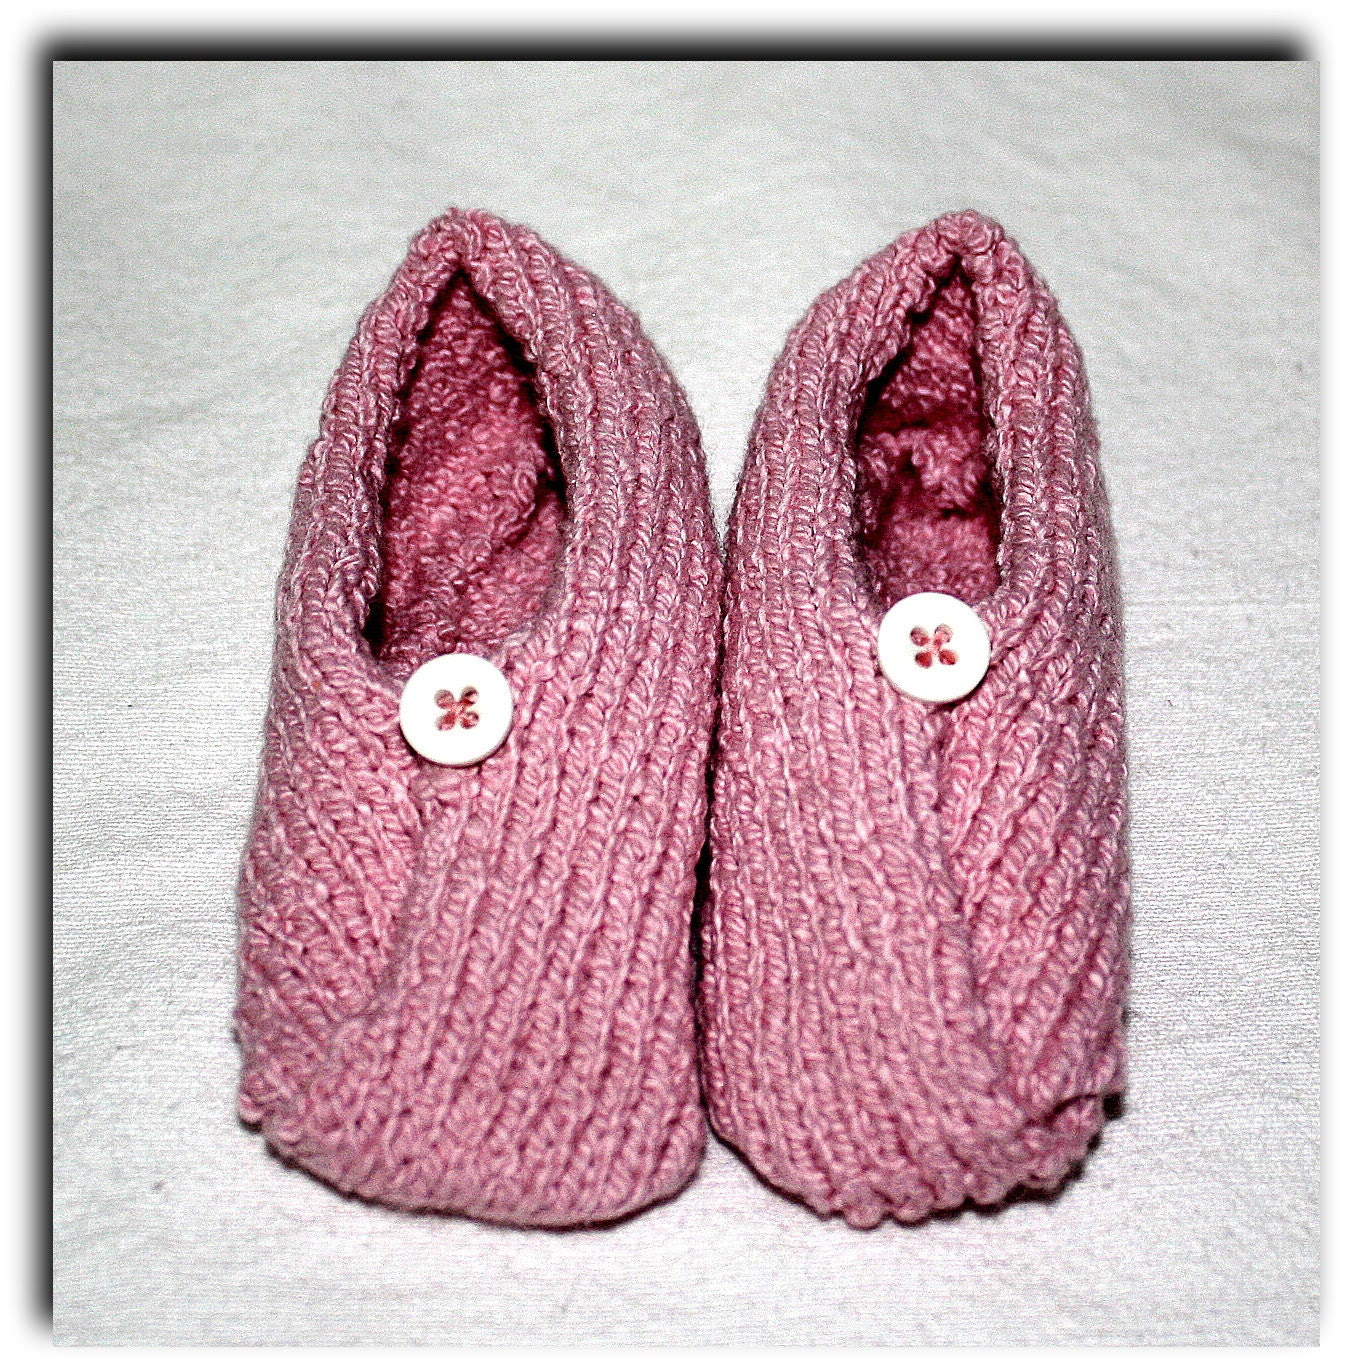 Valentine's Baby Kimono Slipper Booties -  9 to 15 months infant, pink stretch cotton with button